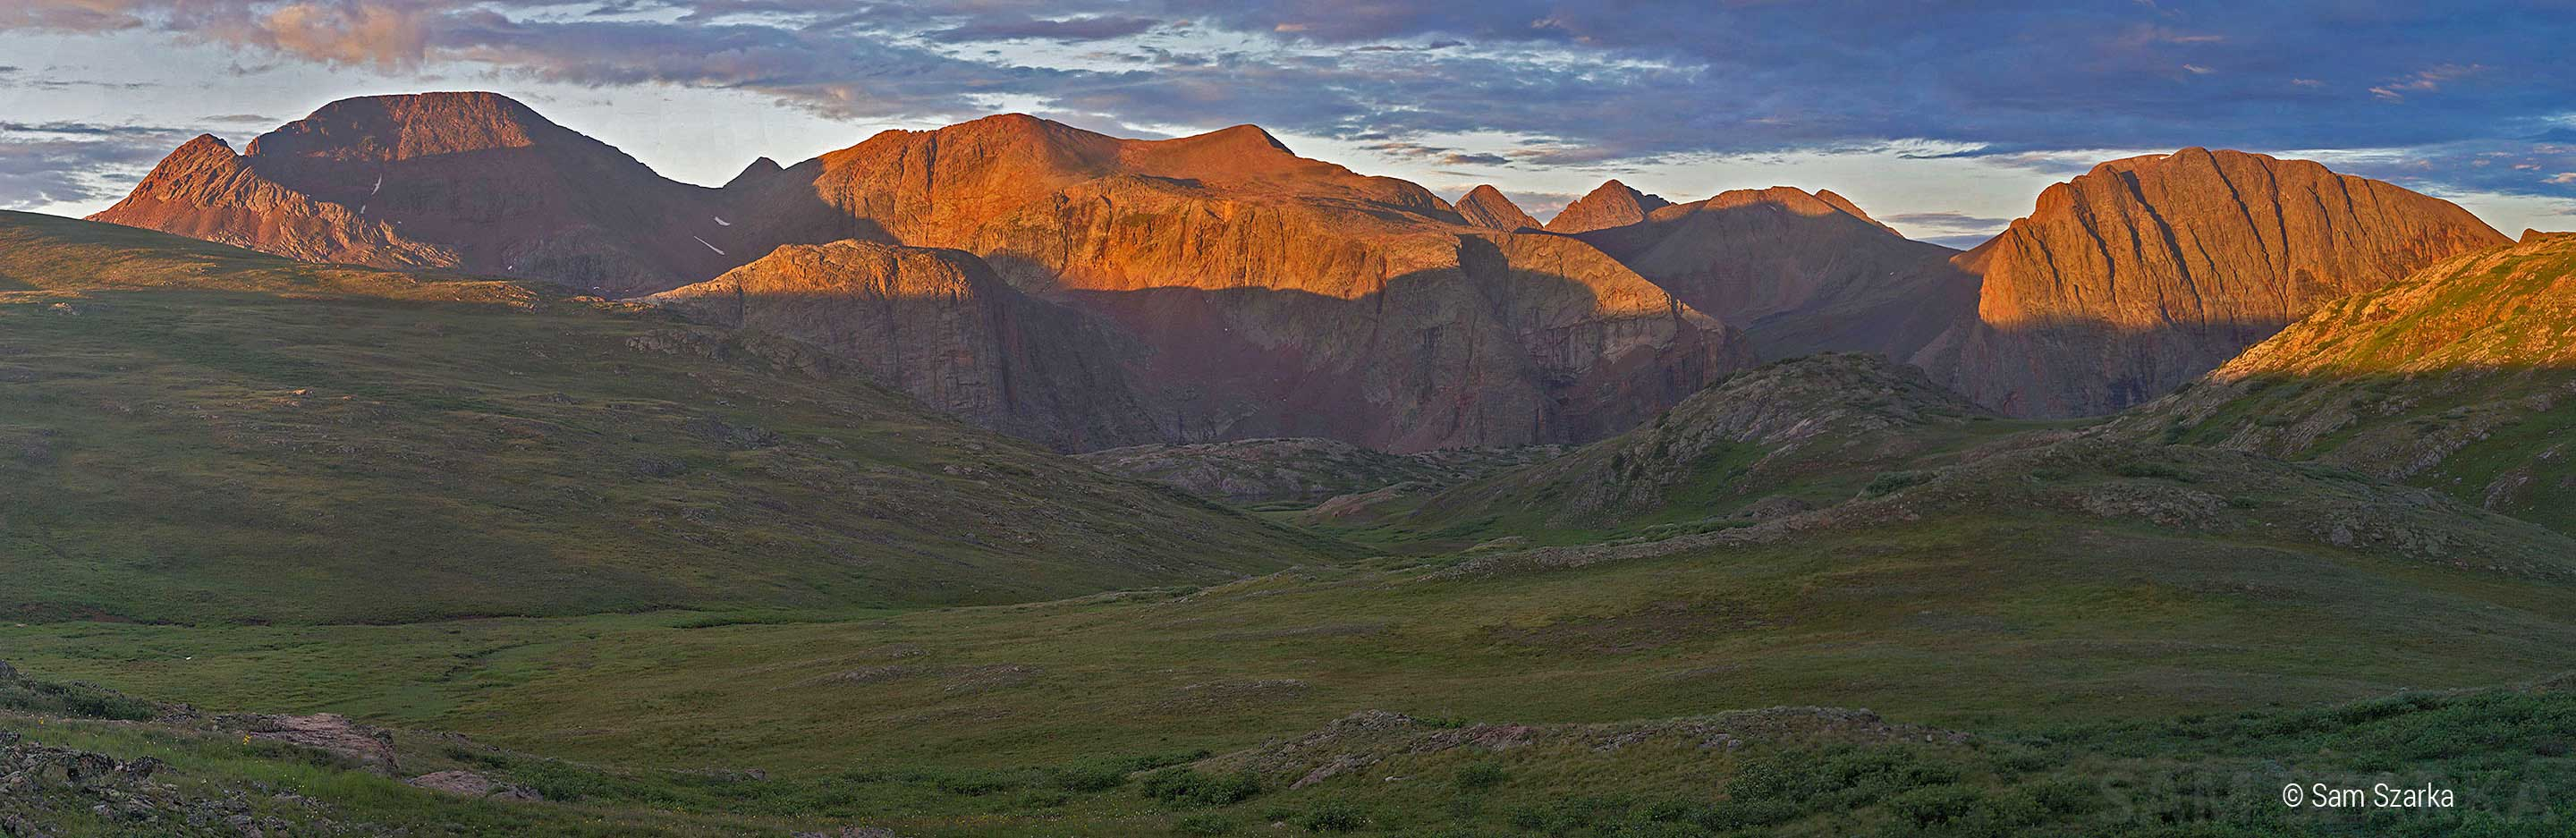 Weminuche Wilderness - Continental Divide Trail